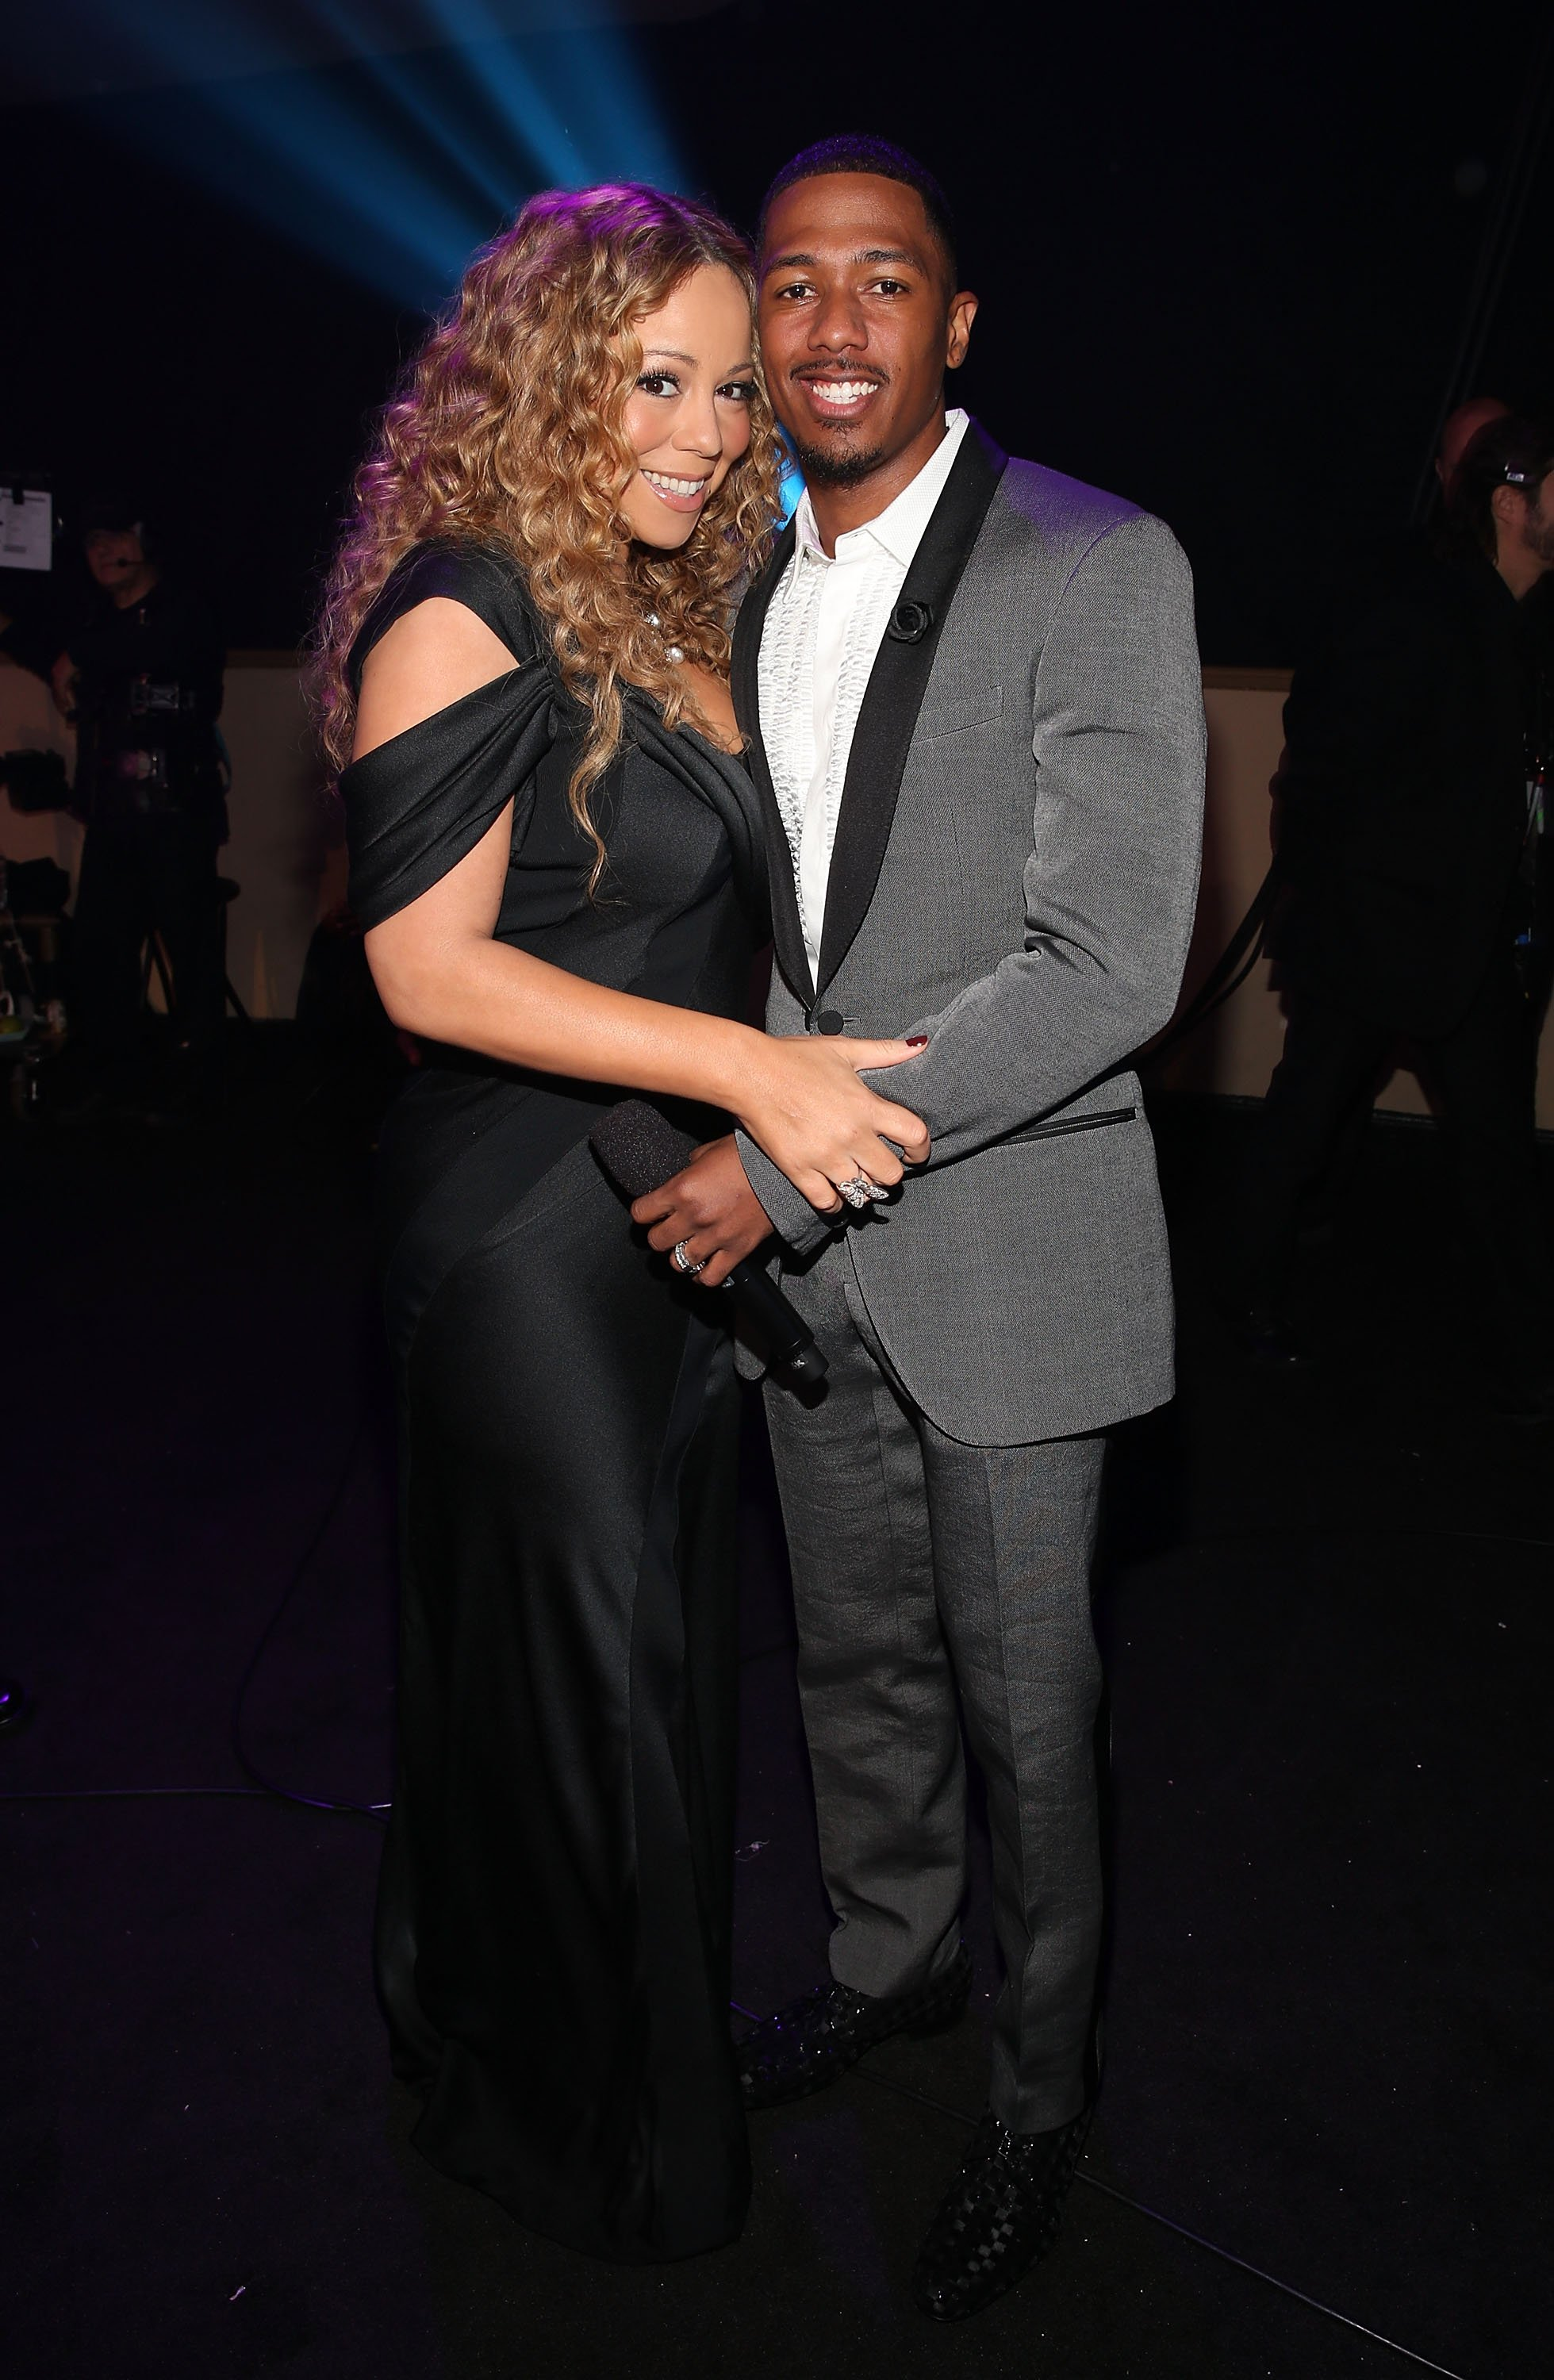 Mariah Carey & Nick Cannon at Nickelodeon's 2012 TeenNick HALO Awards on Nov. 17, 2012 in California | Photo: Getty Images